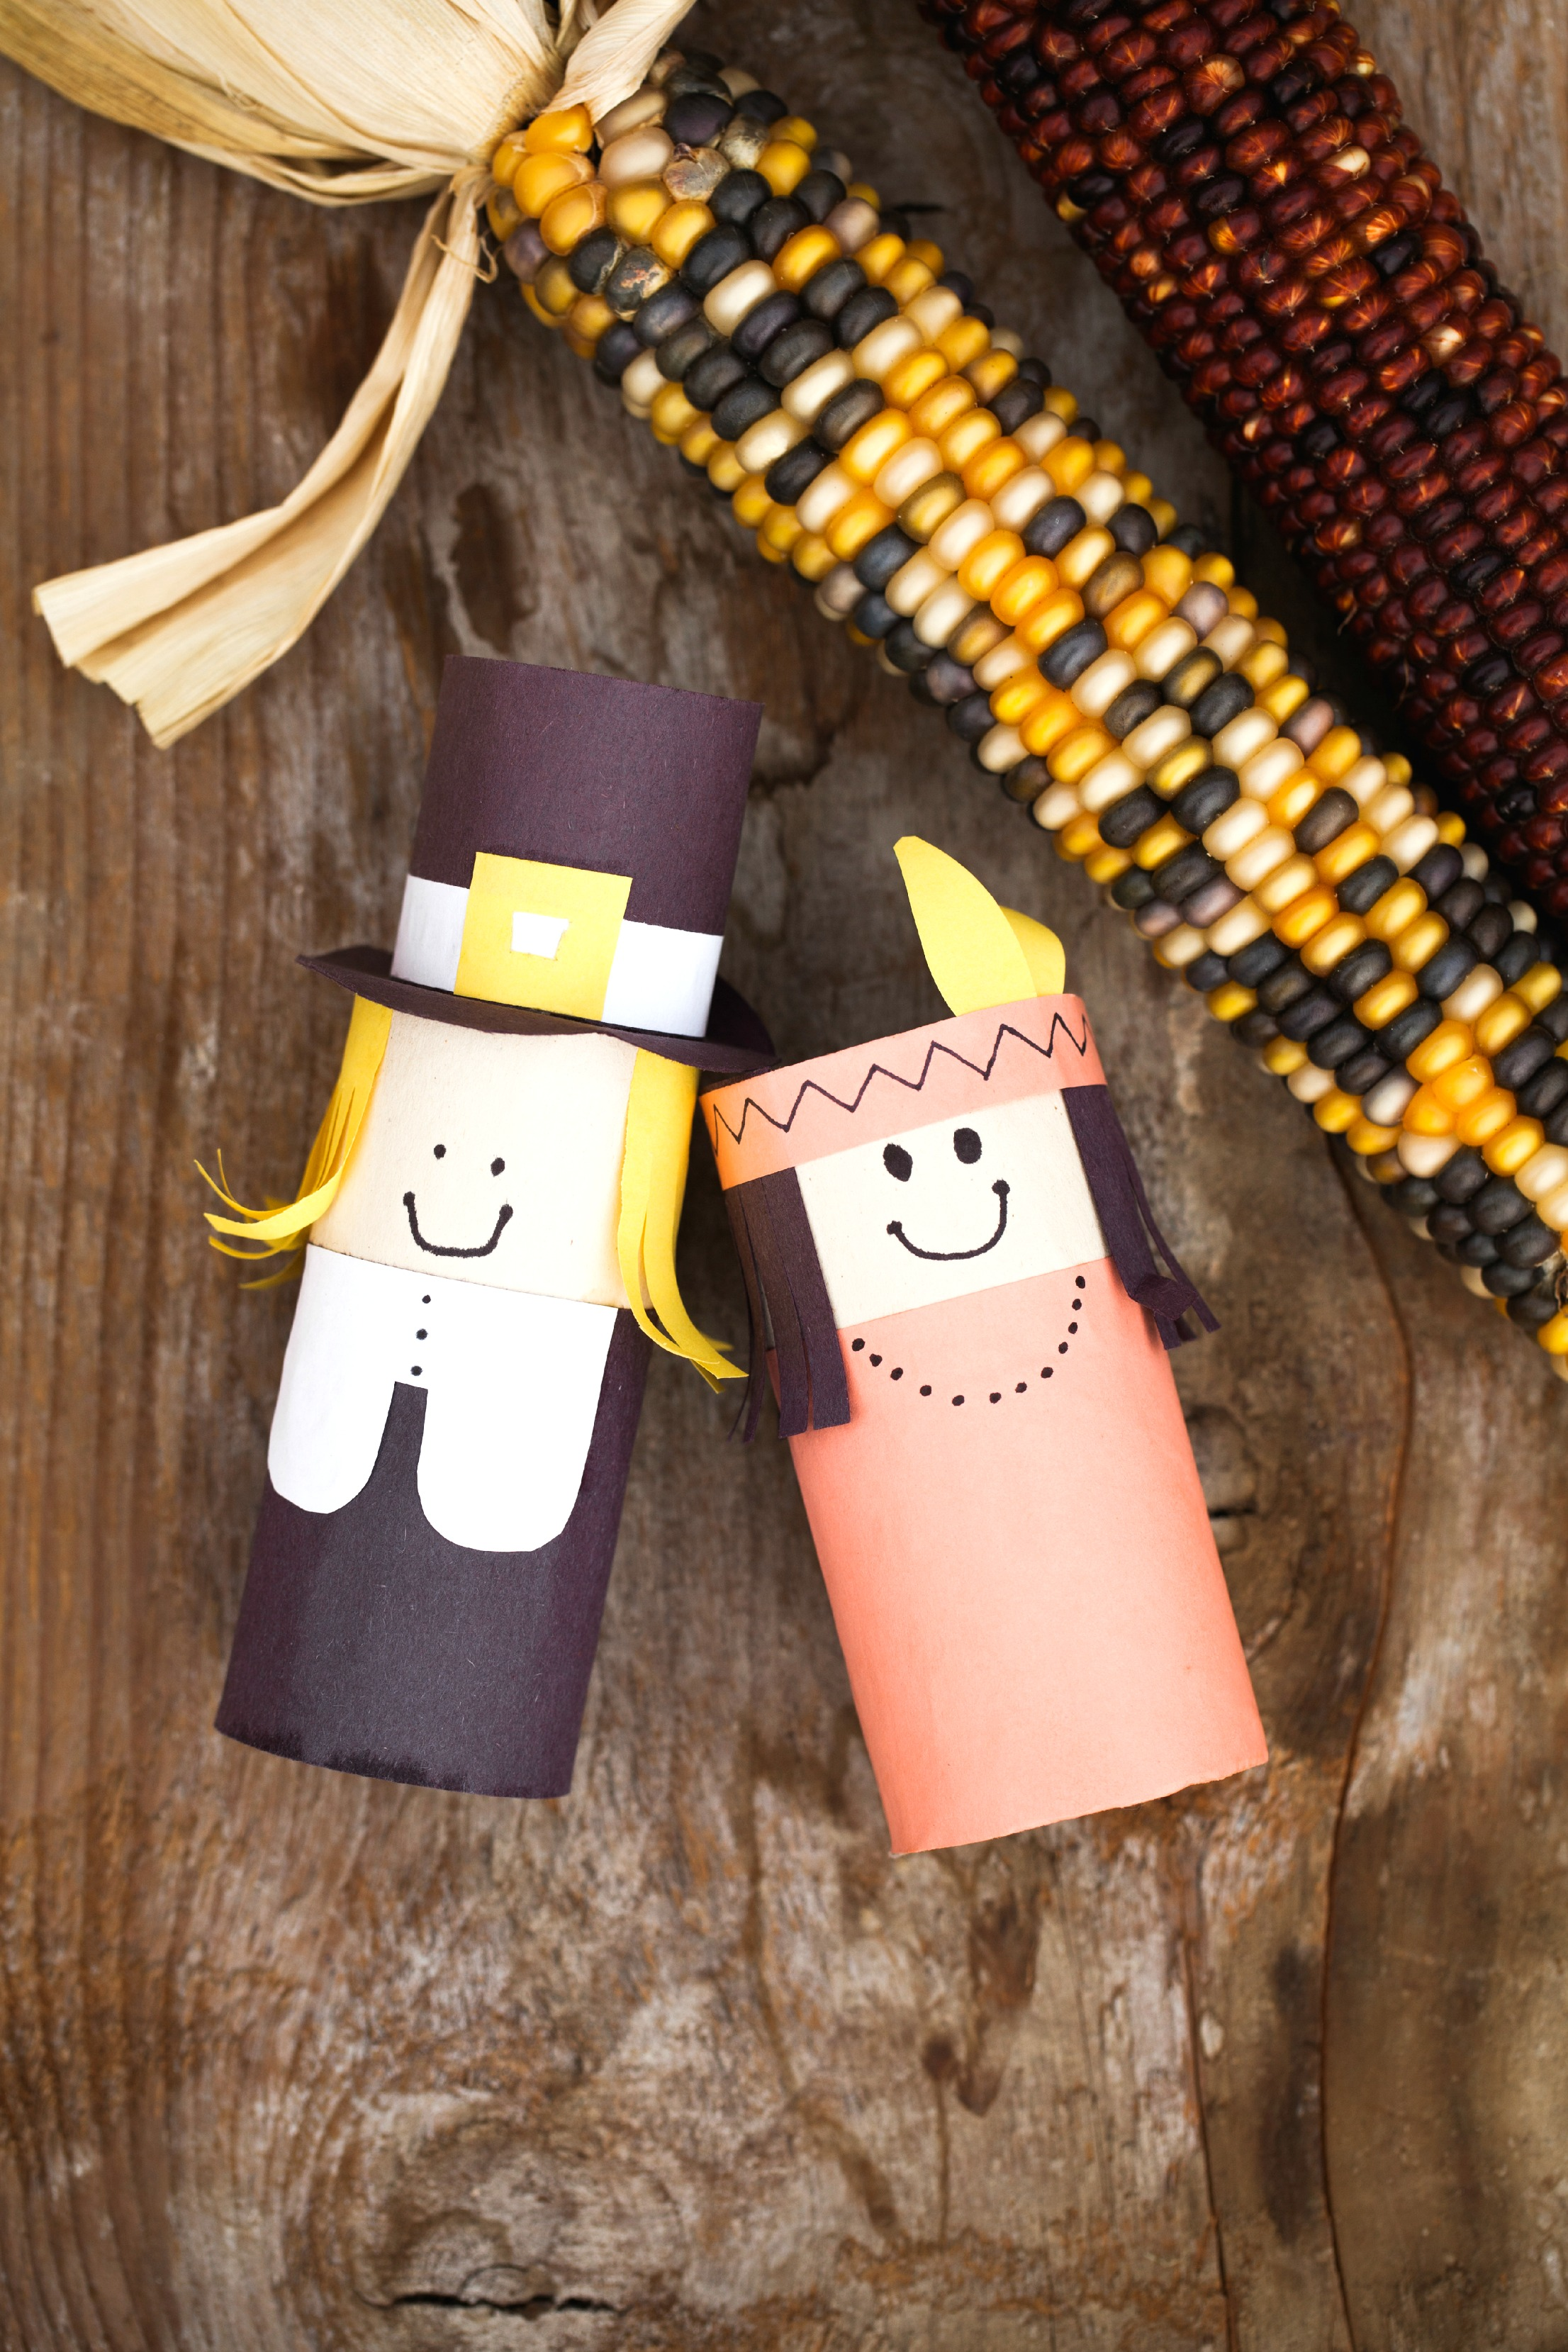 These easy pilgrim crafts made from toilet paper rolls would be so fun to make with the kids and display for thanksgiving